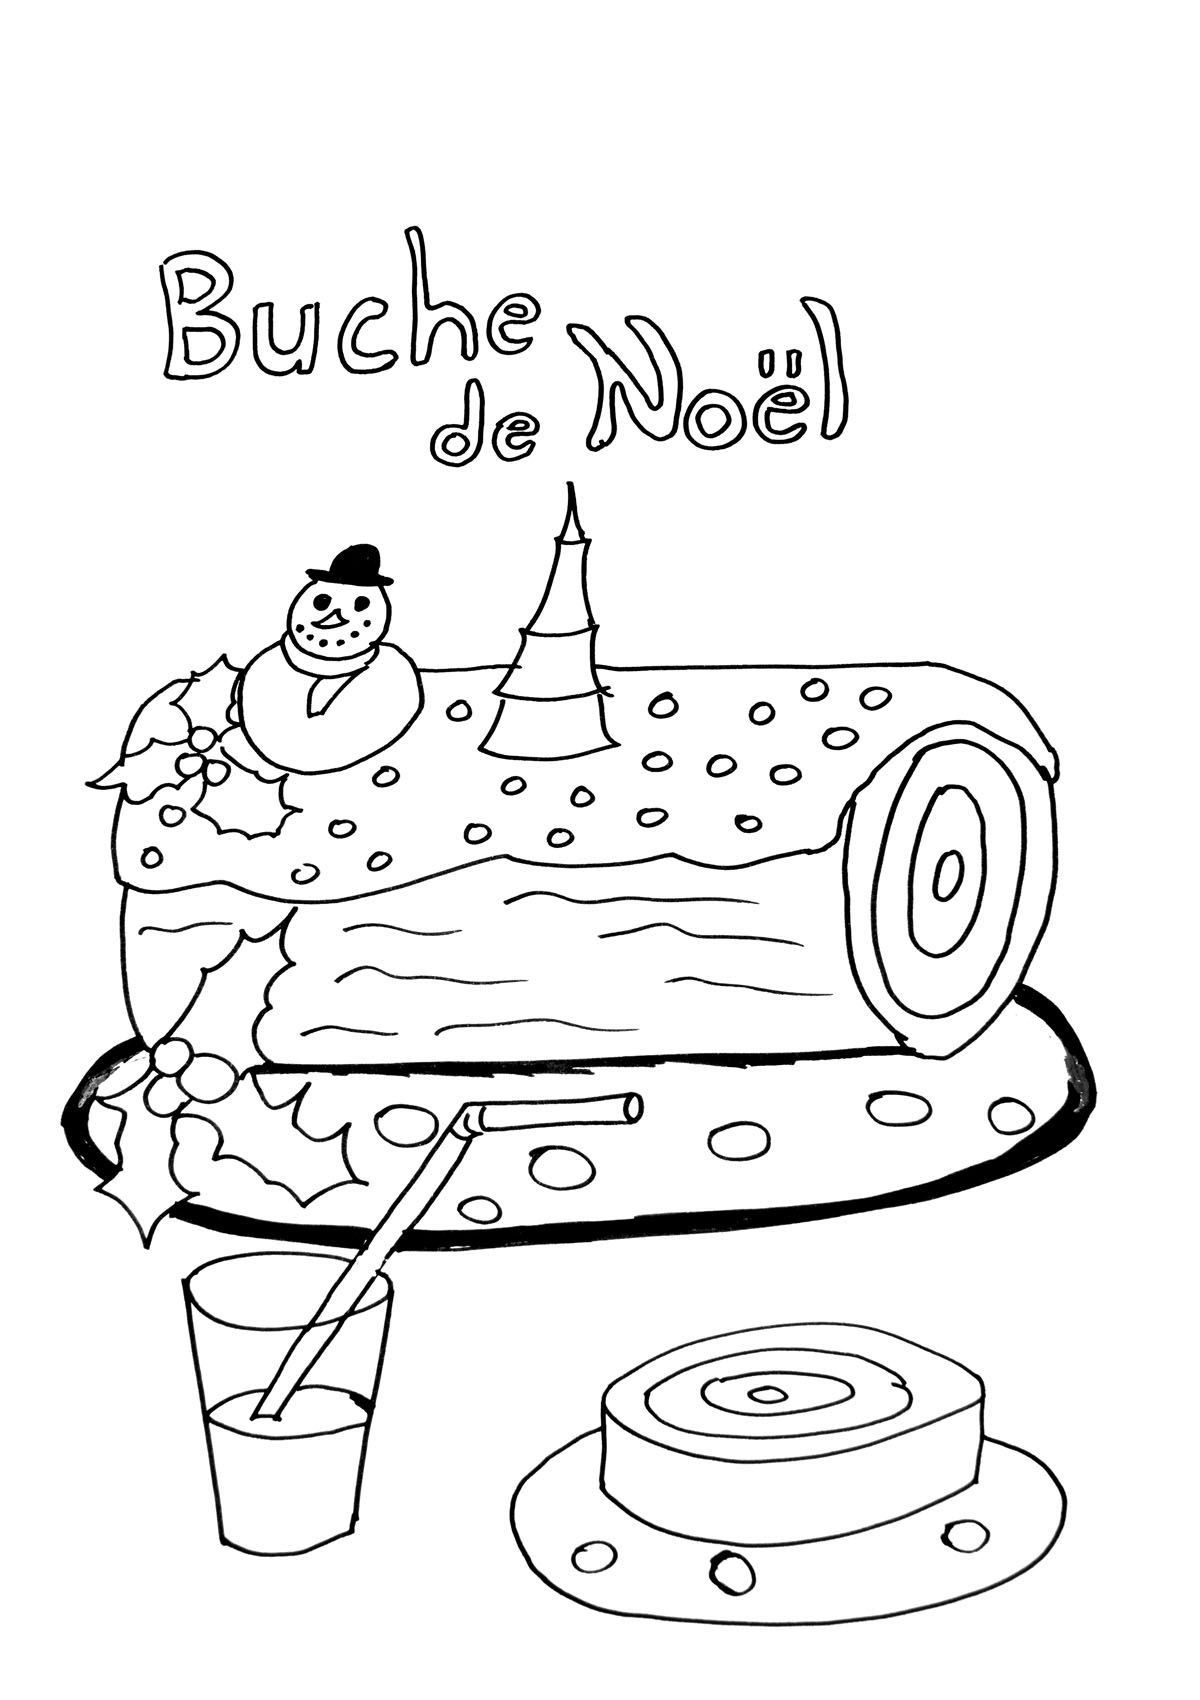 Buche De Noel With Images Christmas Coloring Pages Christmas